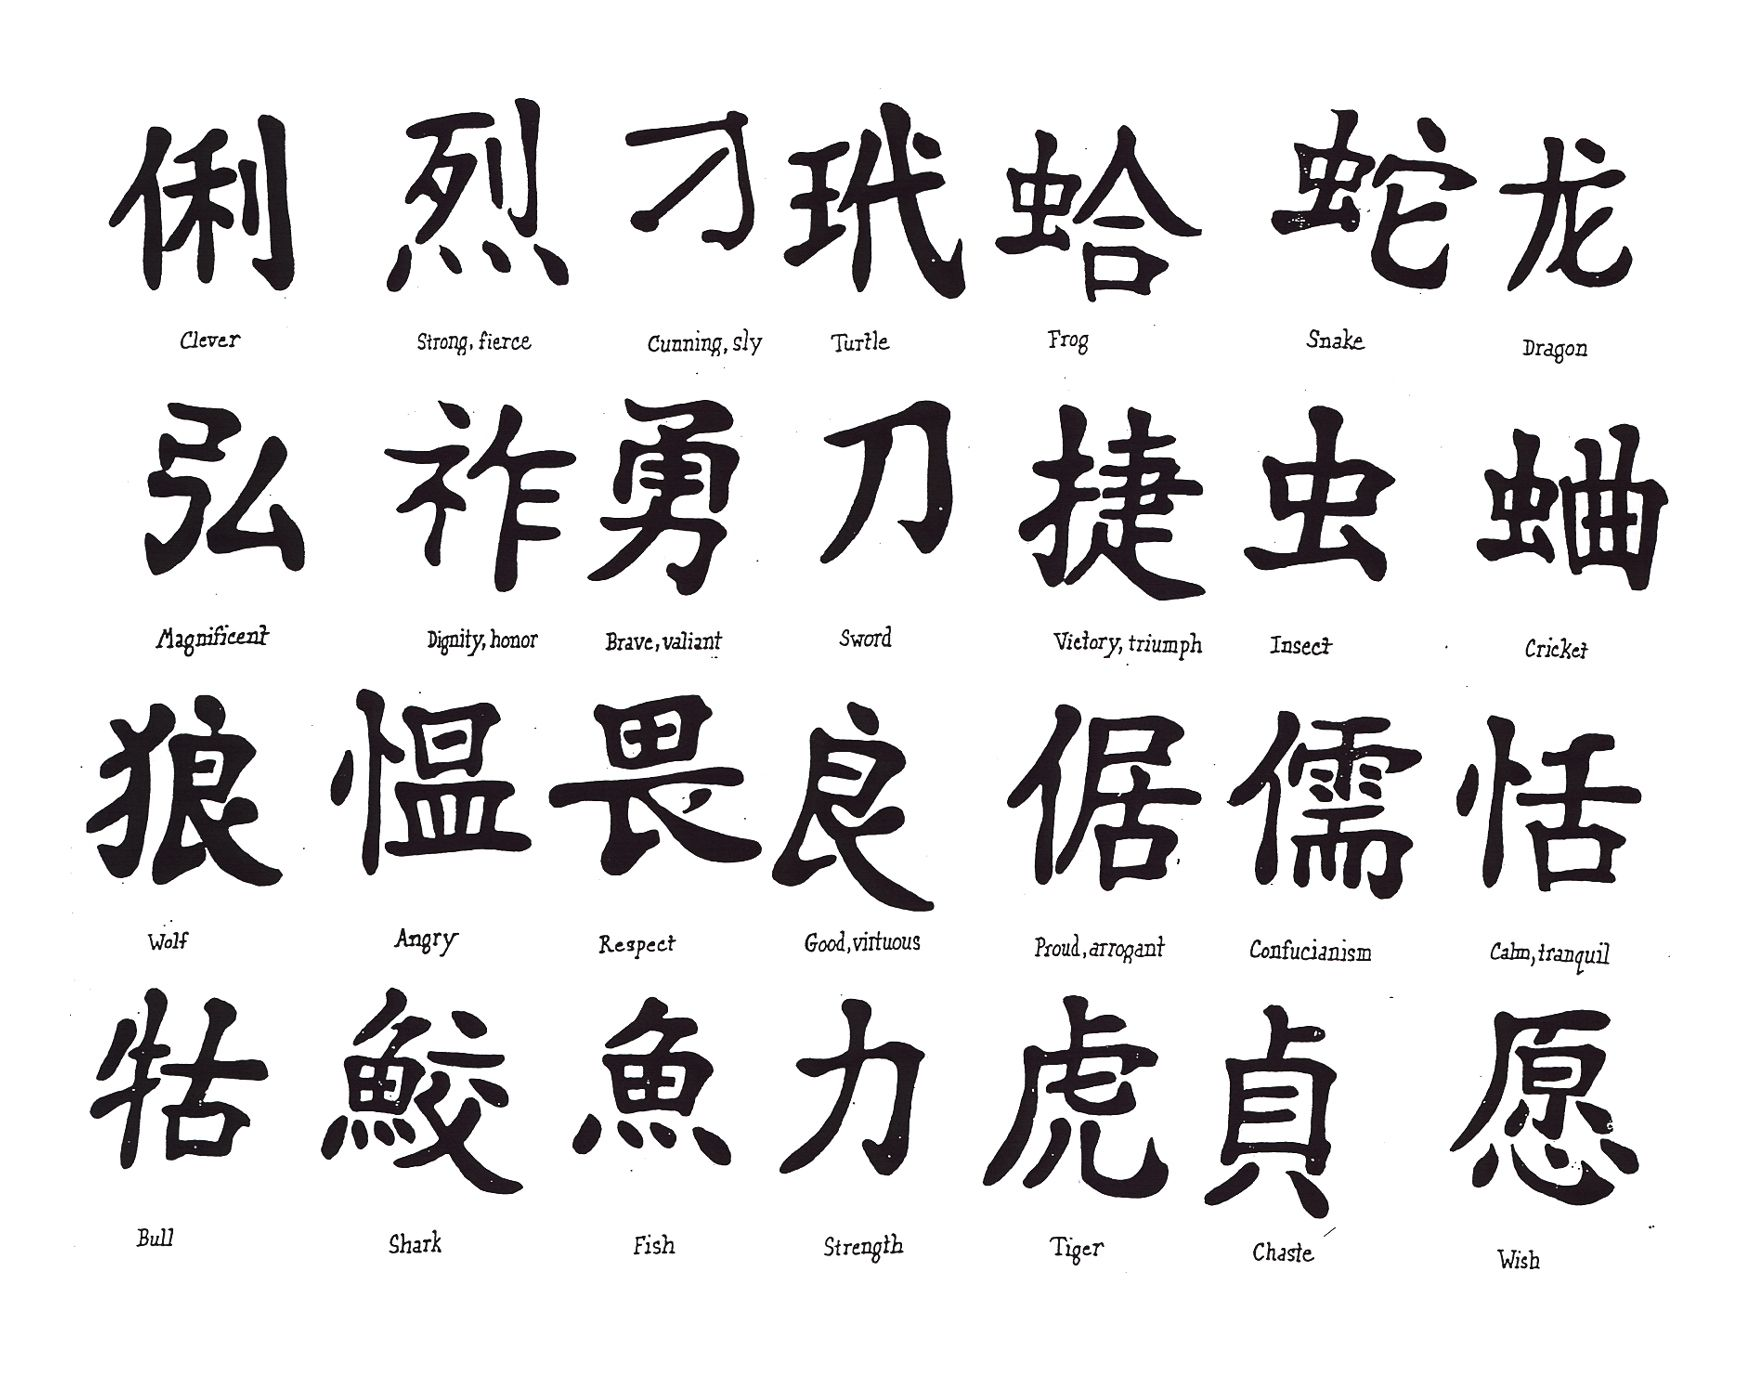 Japanese Tattoo Symbols Kanji Tattoo Chinese Symbol Tattoos Japanese Tattoo Symbols